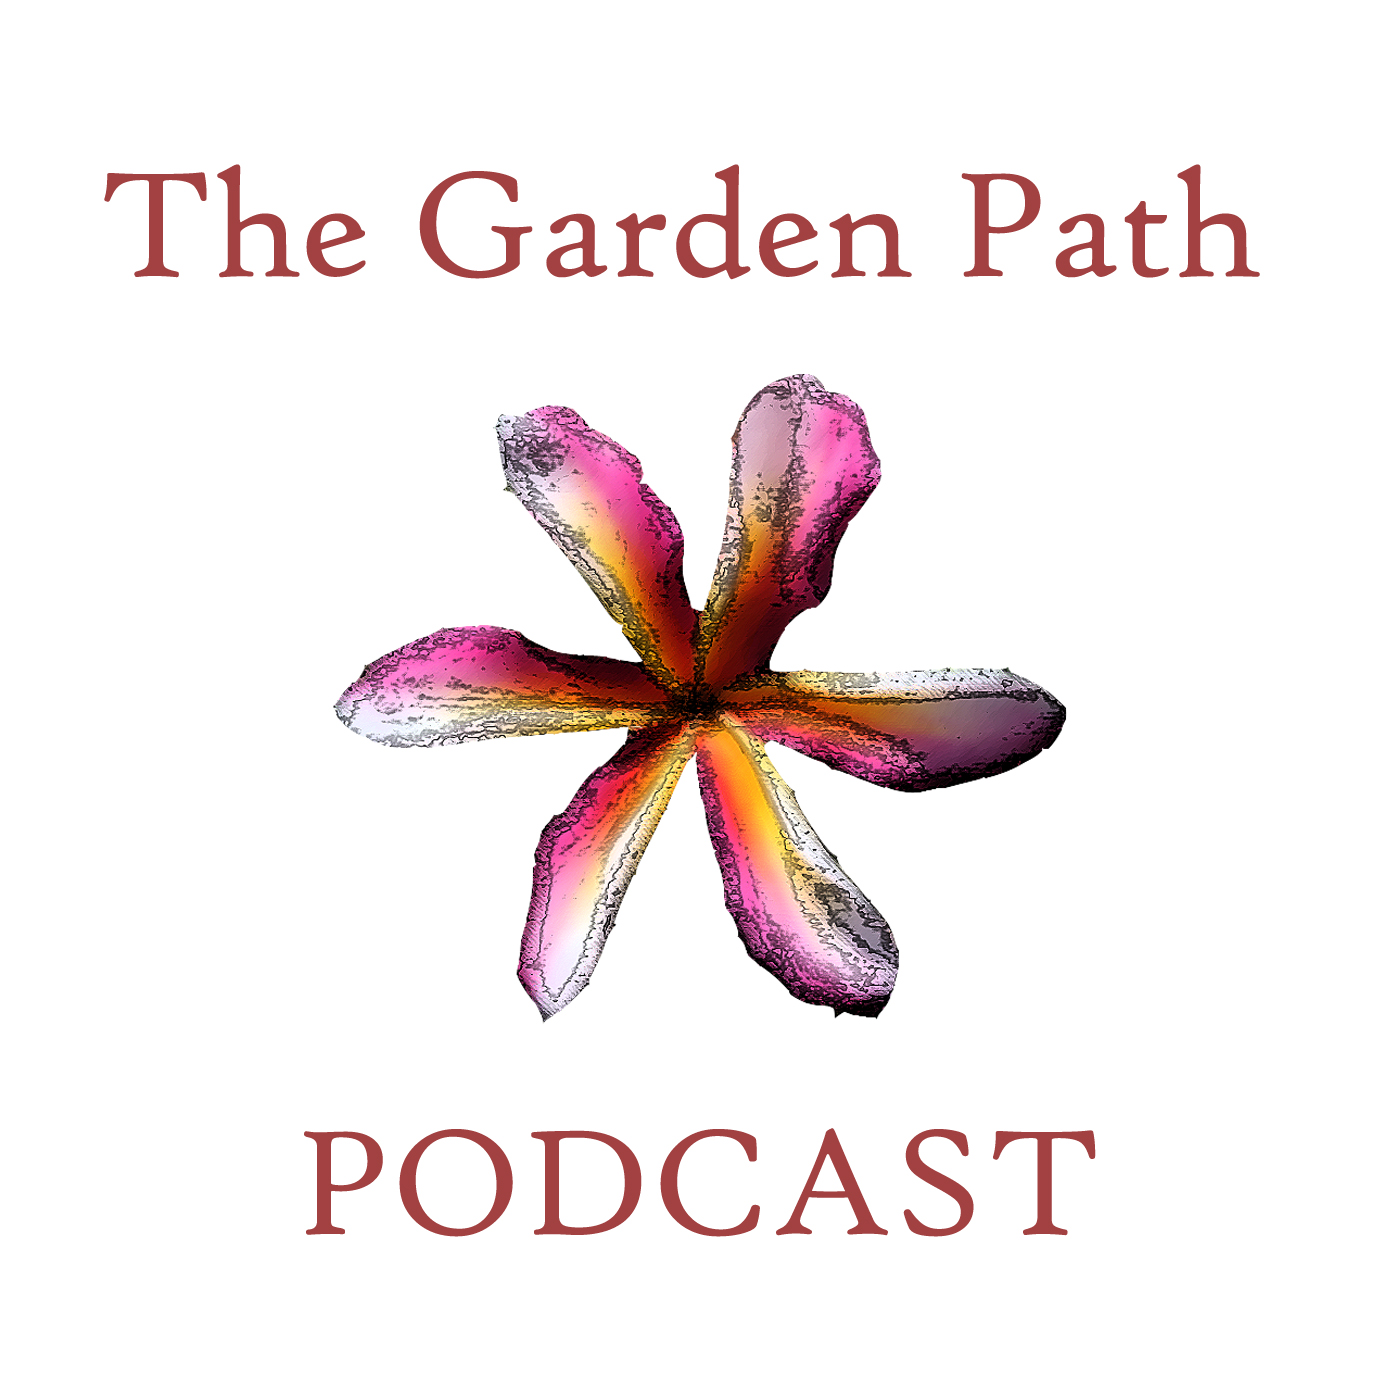 » The Garden Path Podcast